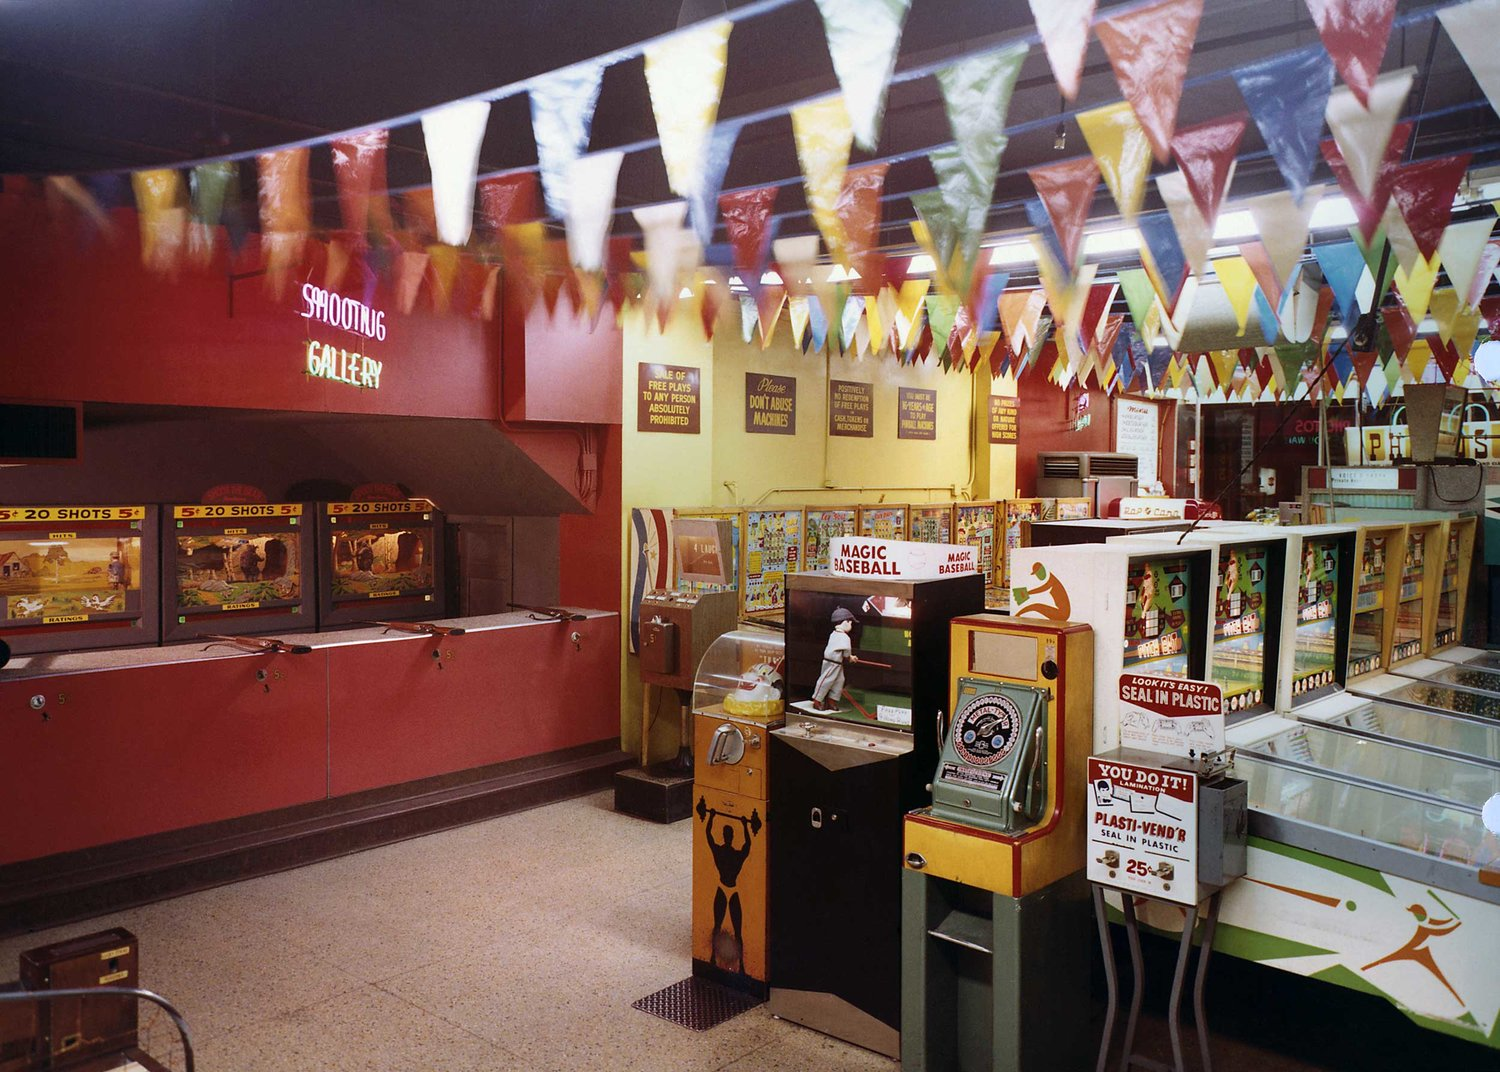 Wonderland Arcade, Kansas City, Missouri, 1968